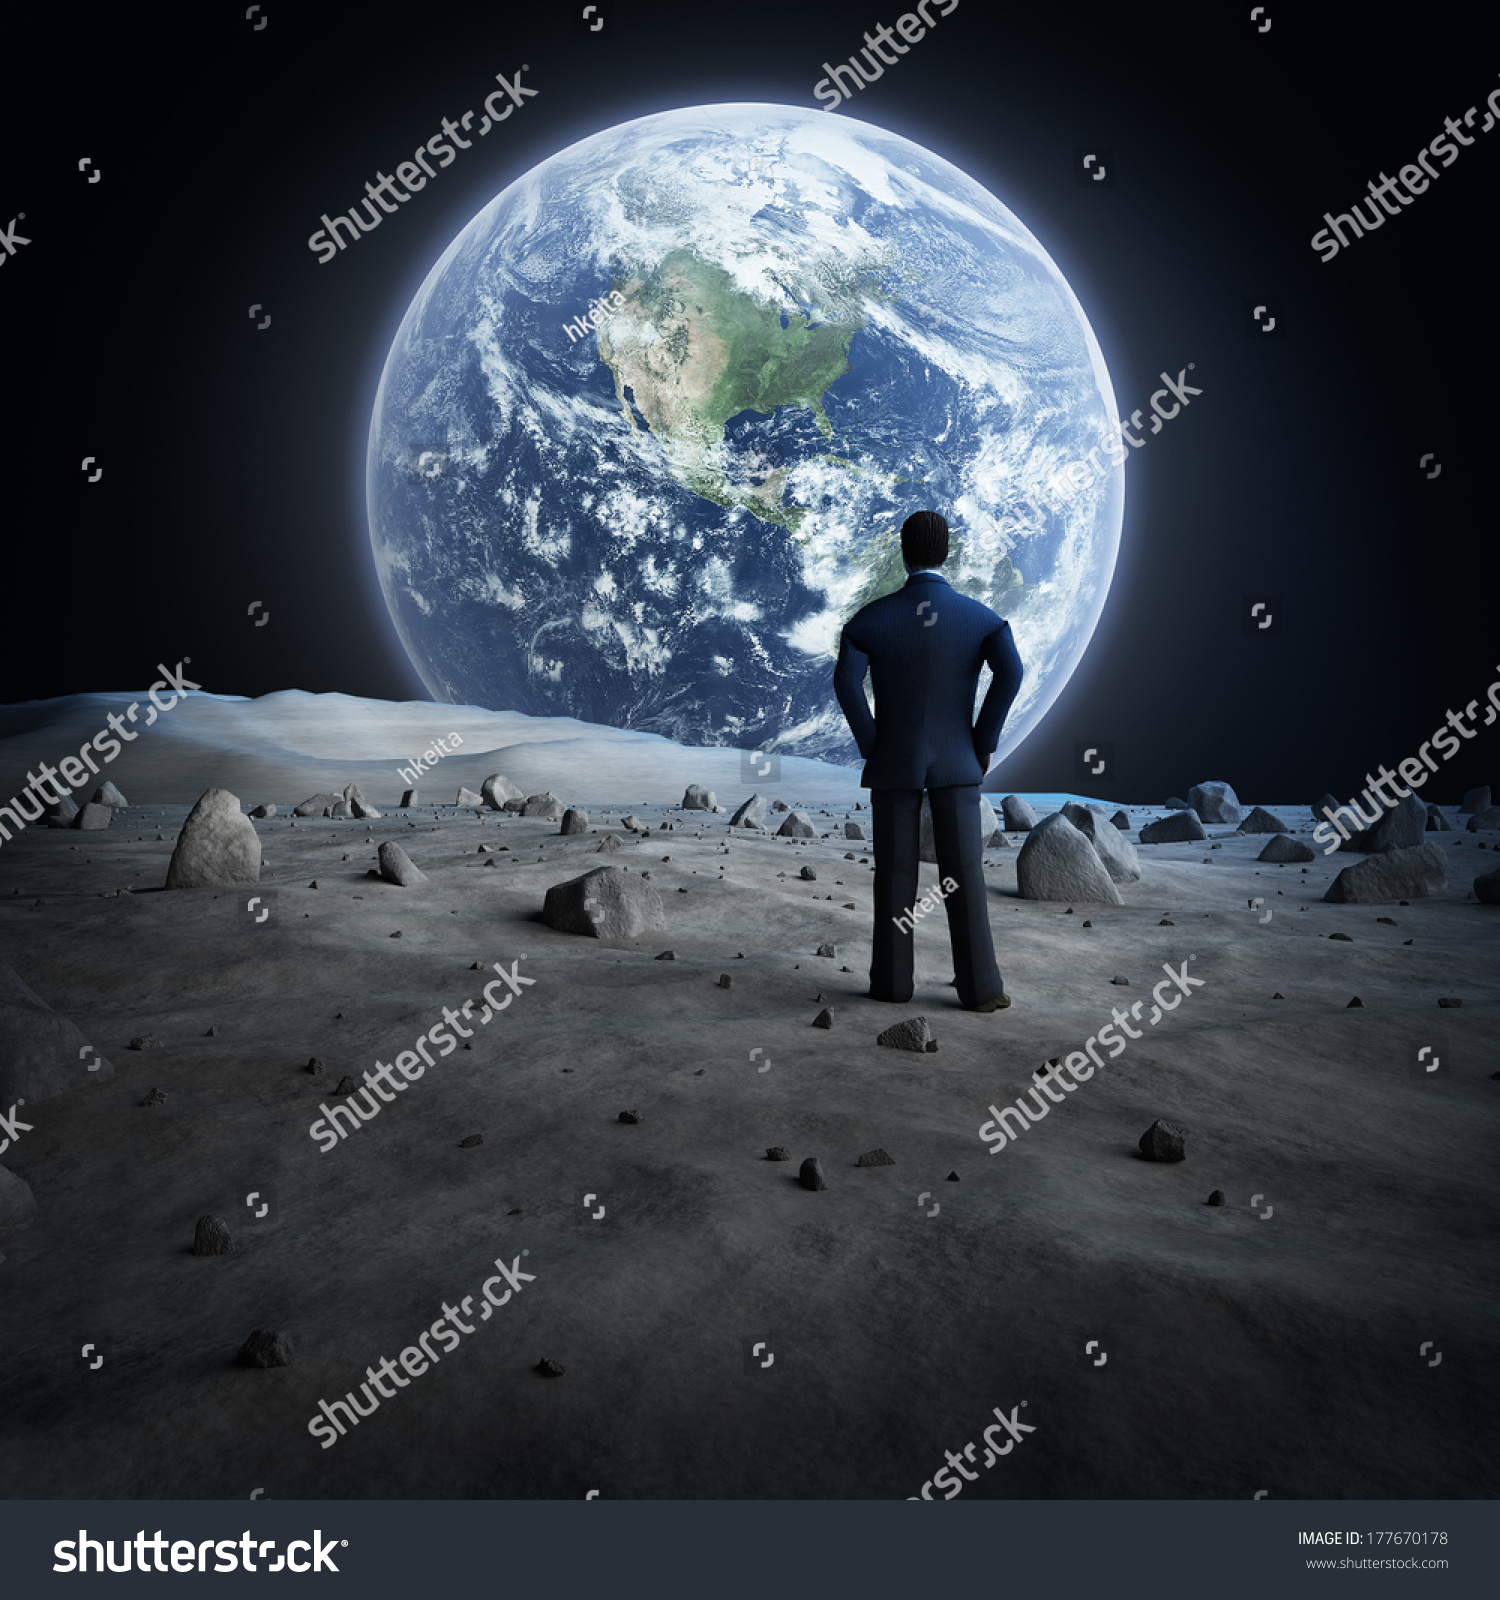 looking at drawing the moon from earth - photo #1